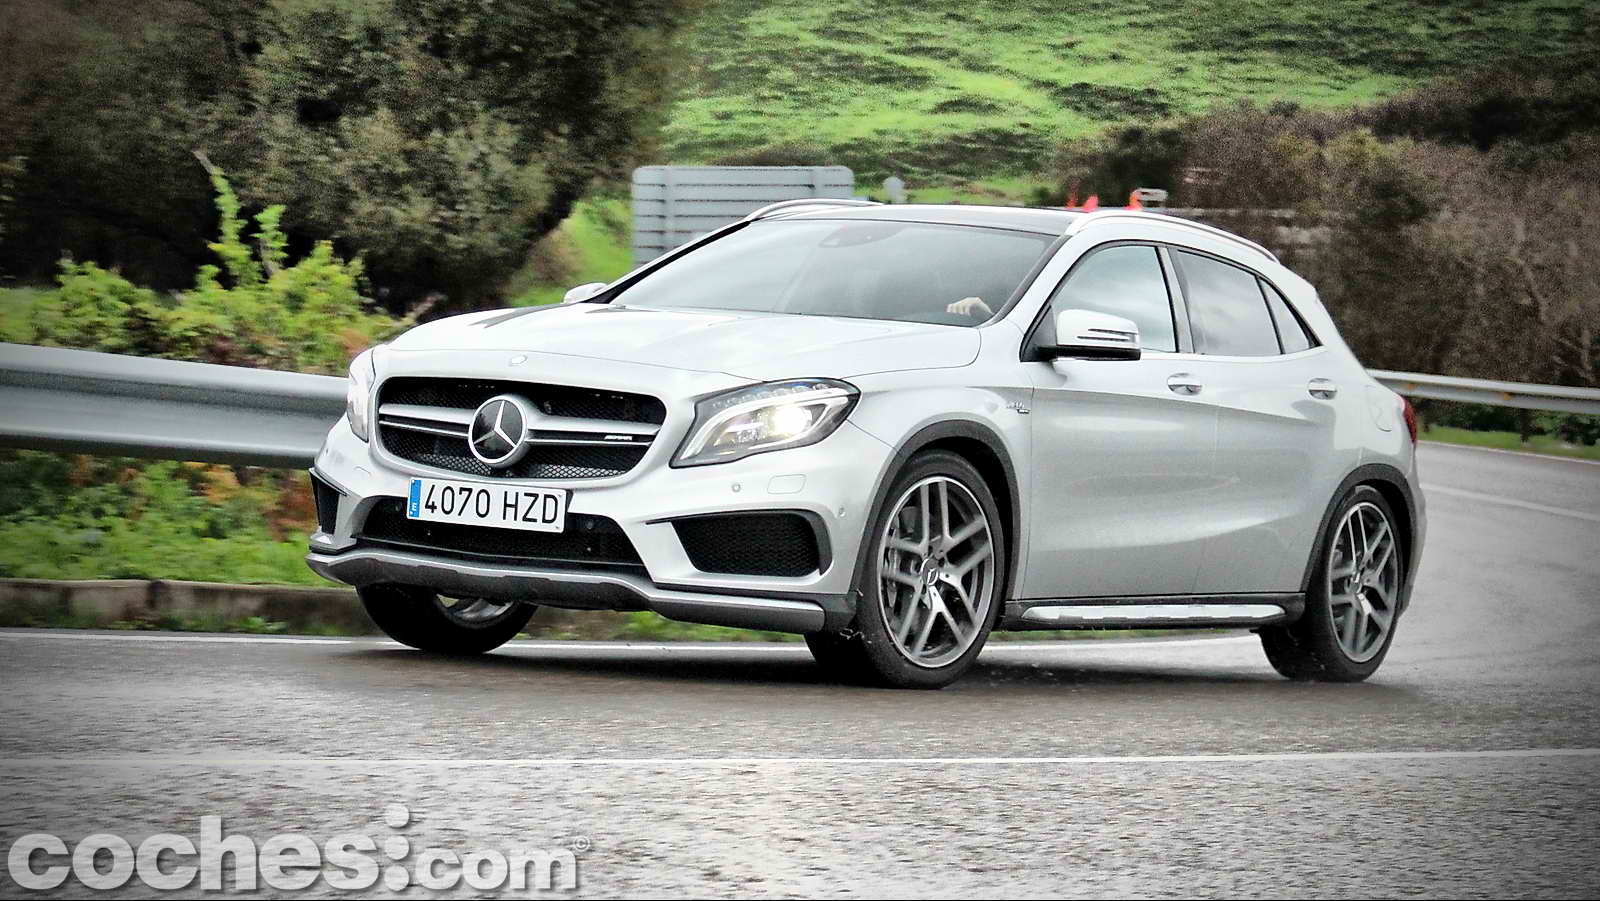 Mercedes_Benz_GLA_45_AMG_4Matic_043